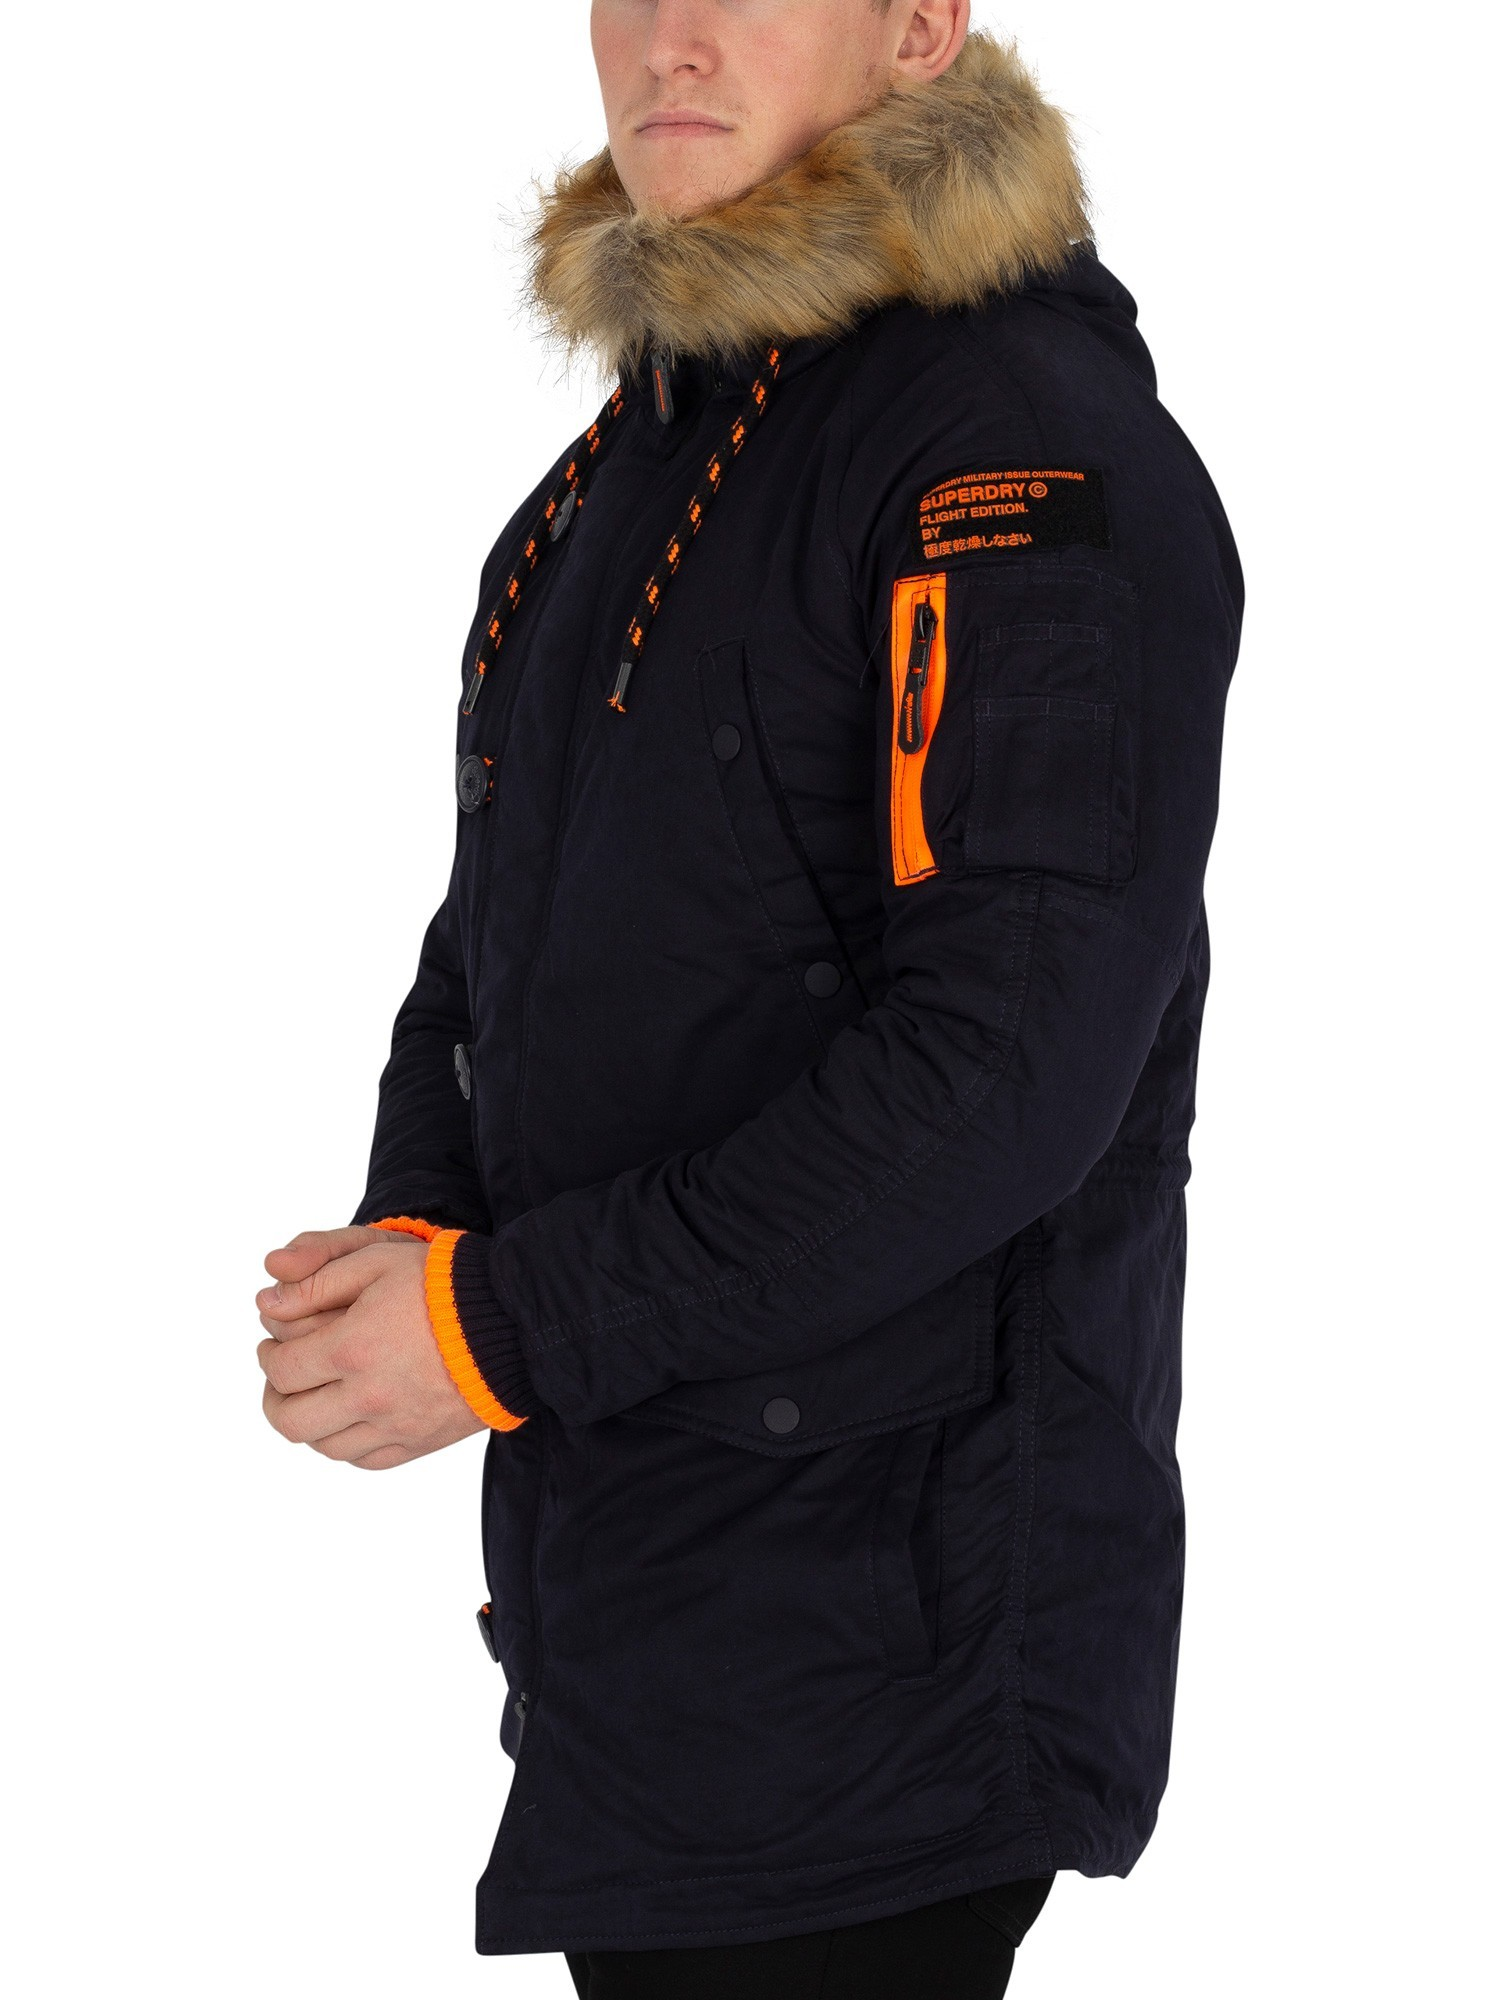 Parka Super Mens Coat Superdry Sd Dark 3 Jacket LSzMqGUVp